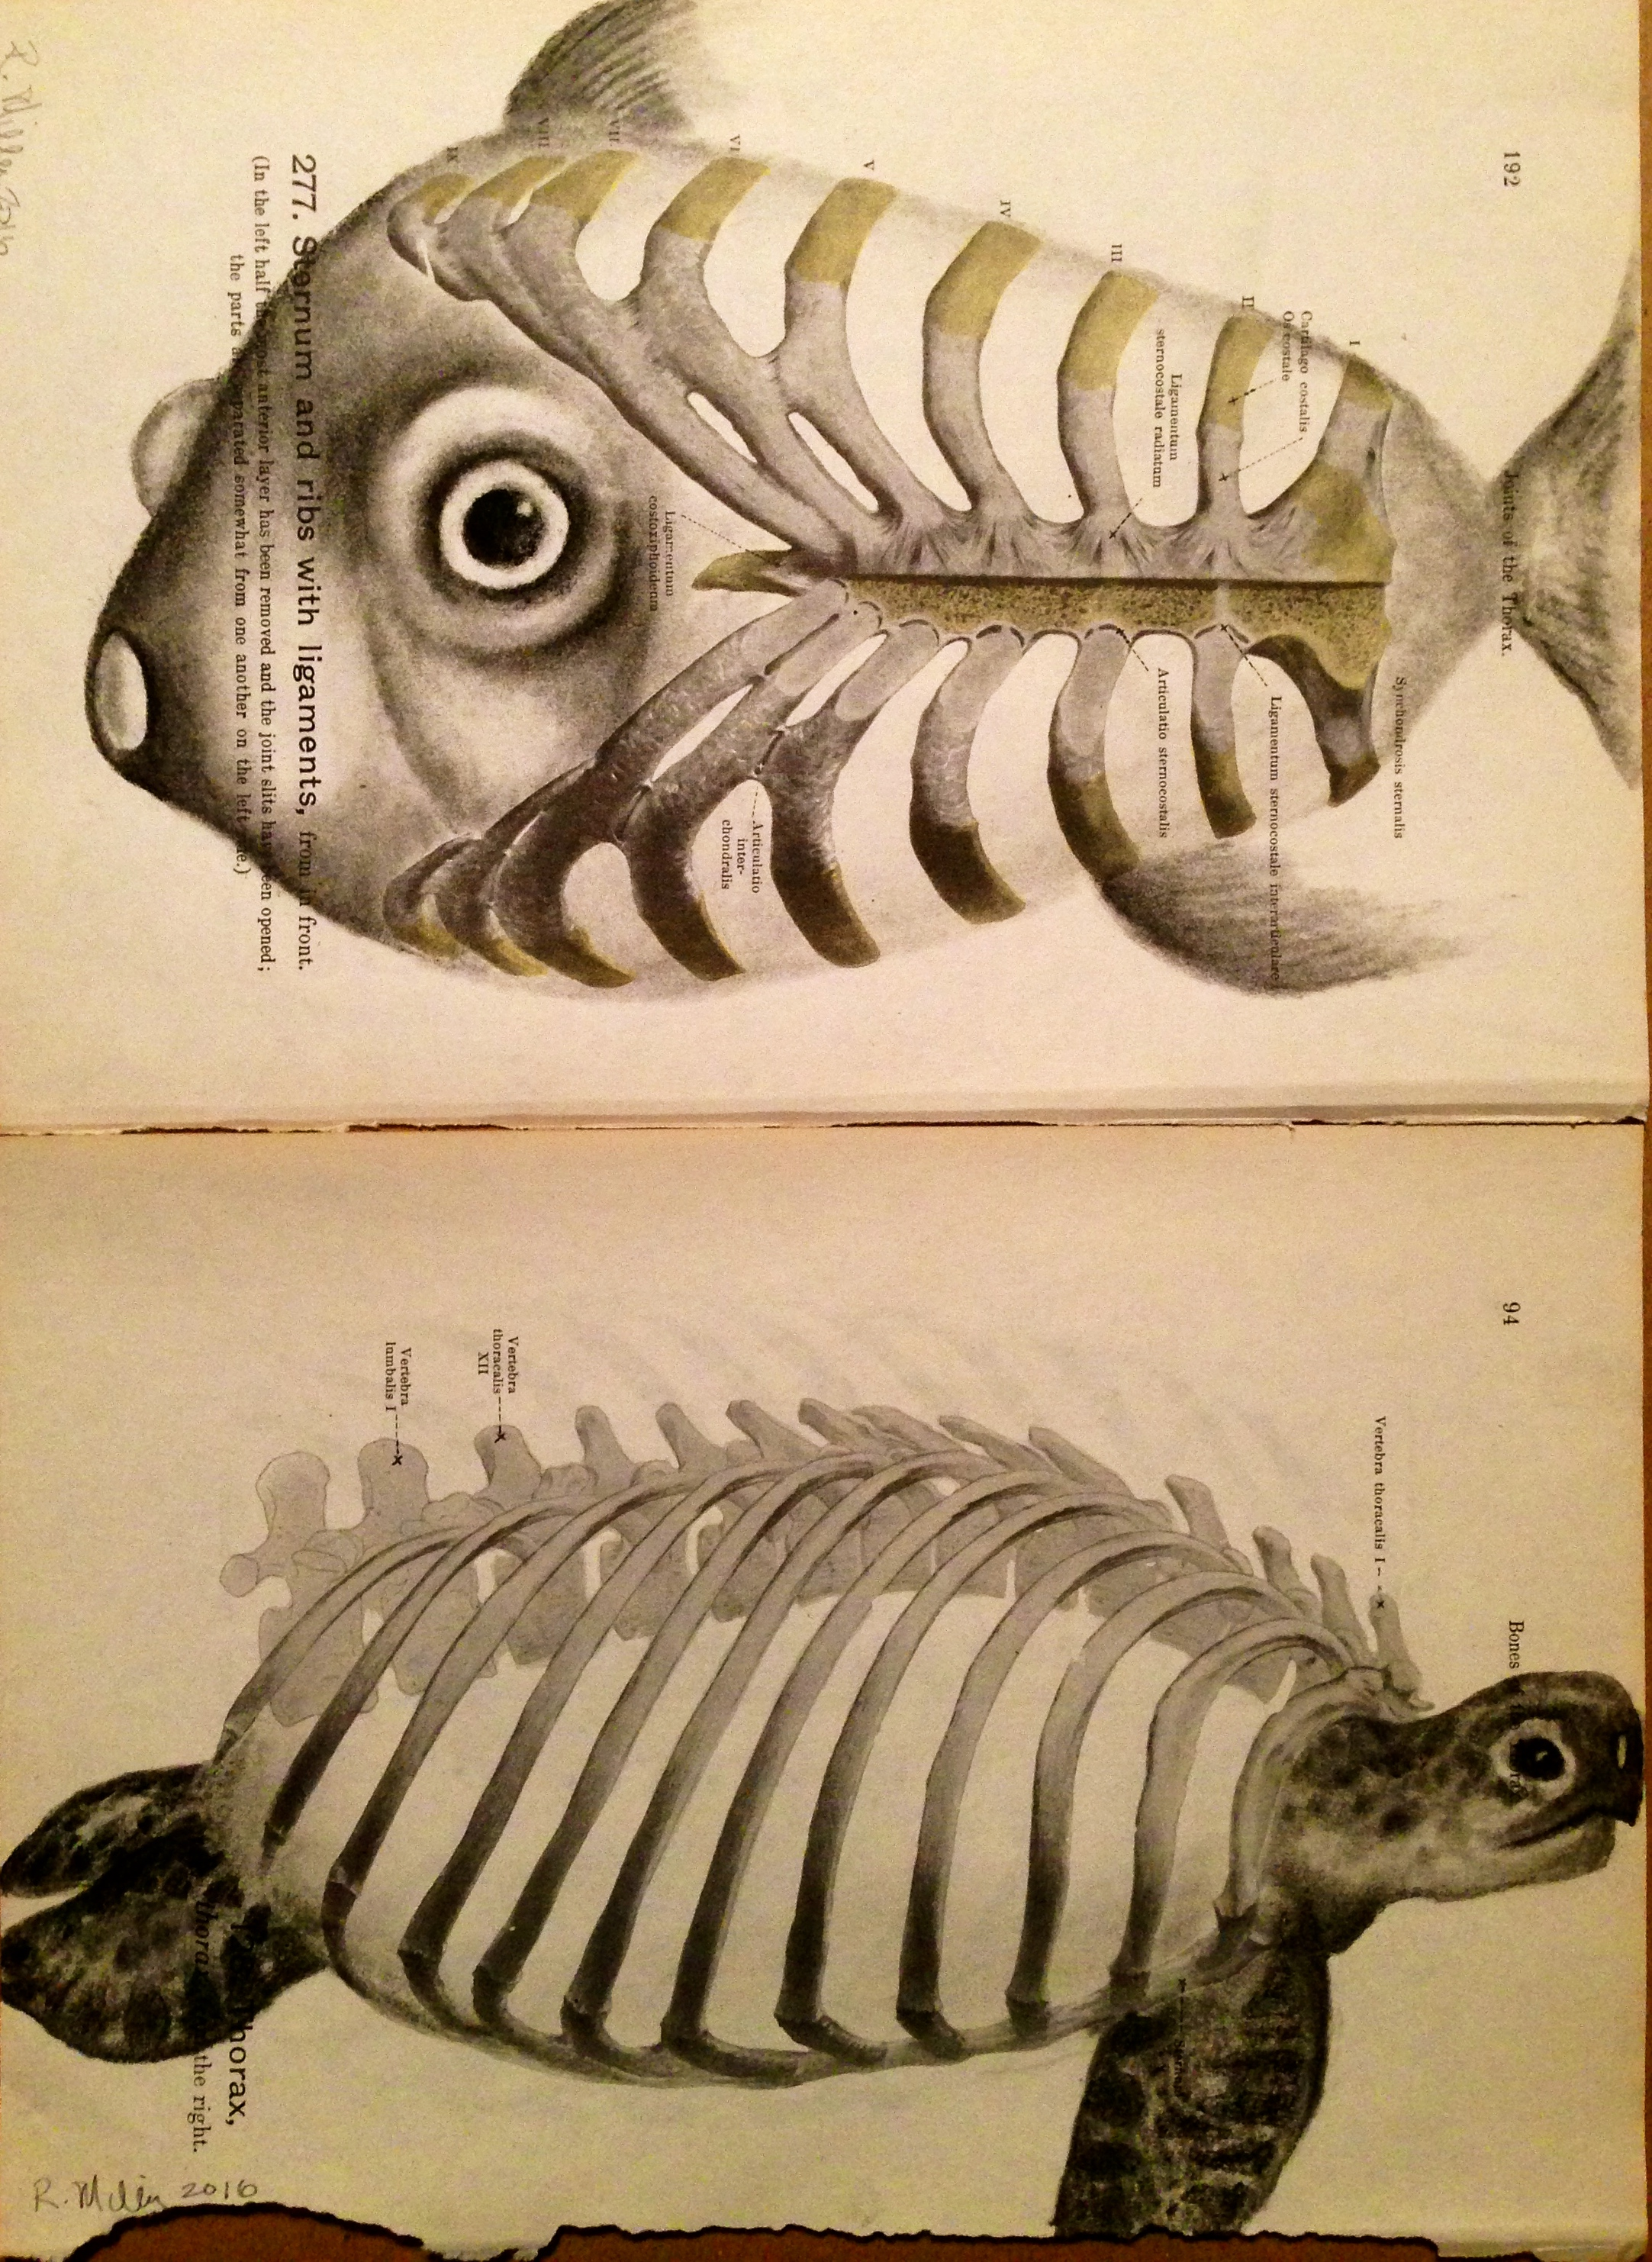 Sternum Fish & Thorax Turtle, 2016   Charcoal on antique 1861 medical paper